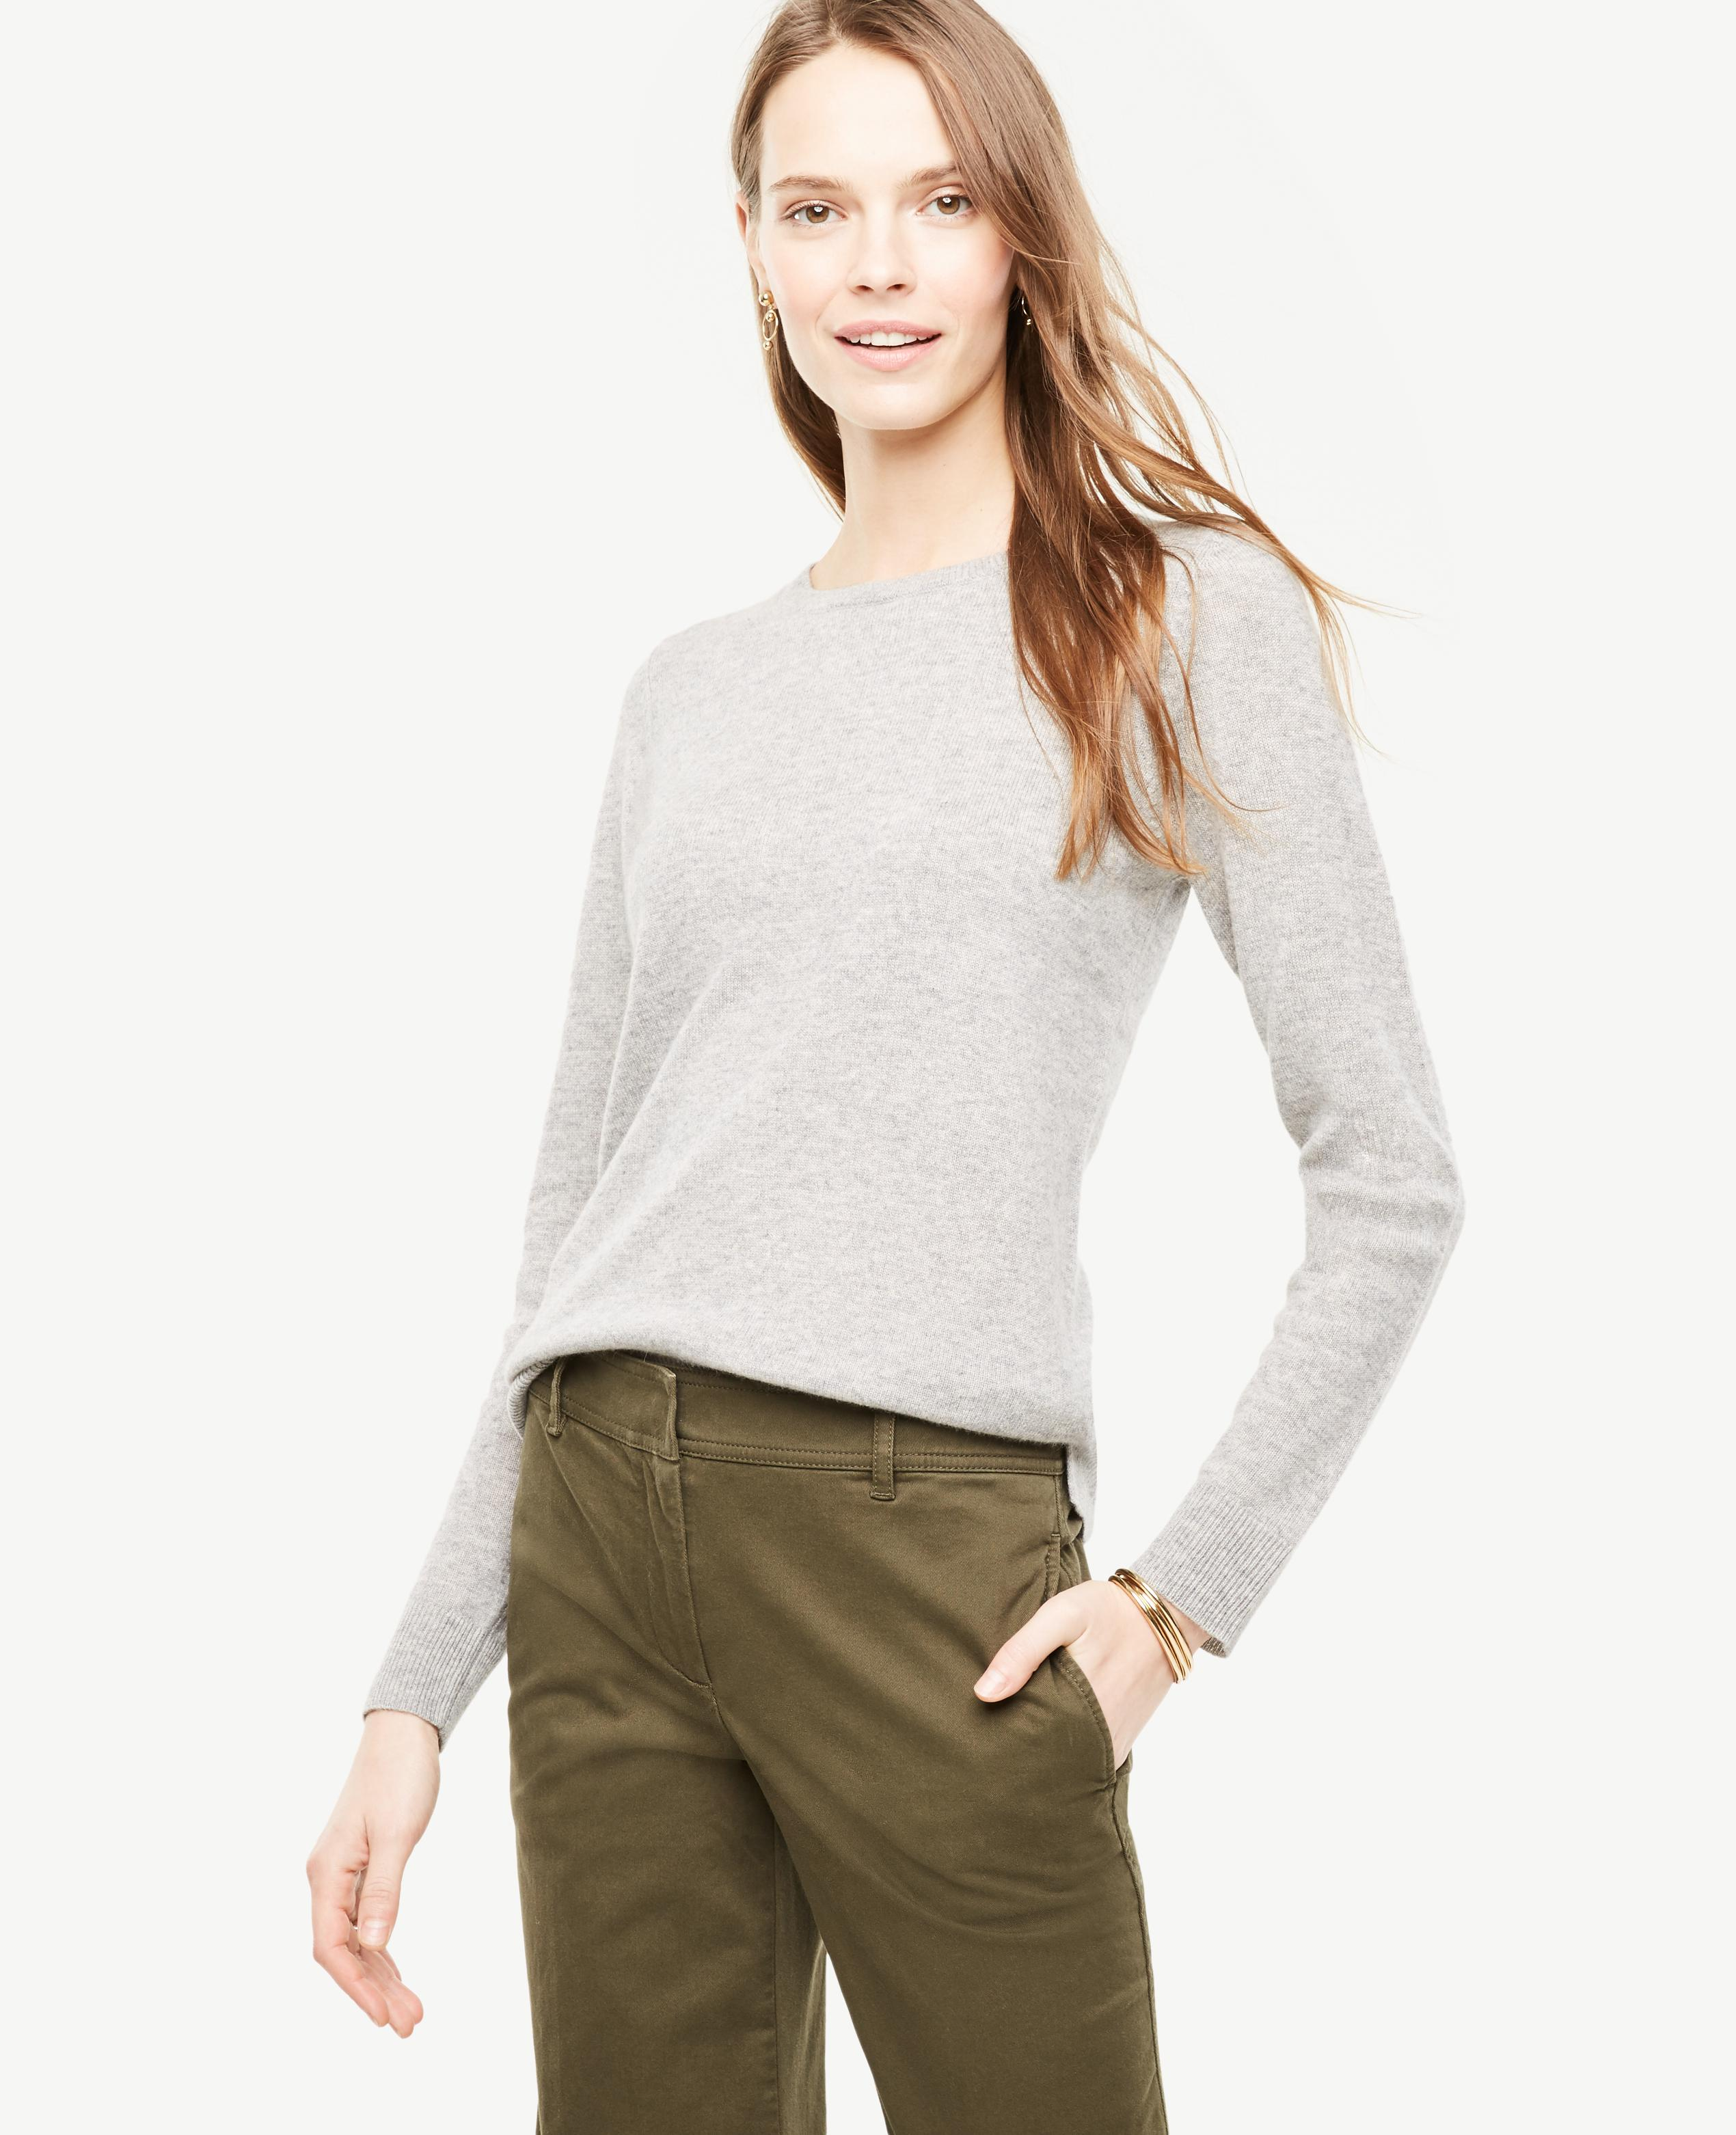 Ann taylor Cashmere Crew Neck Sweater in White | Lyst